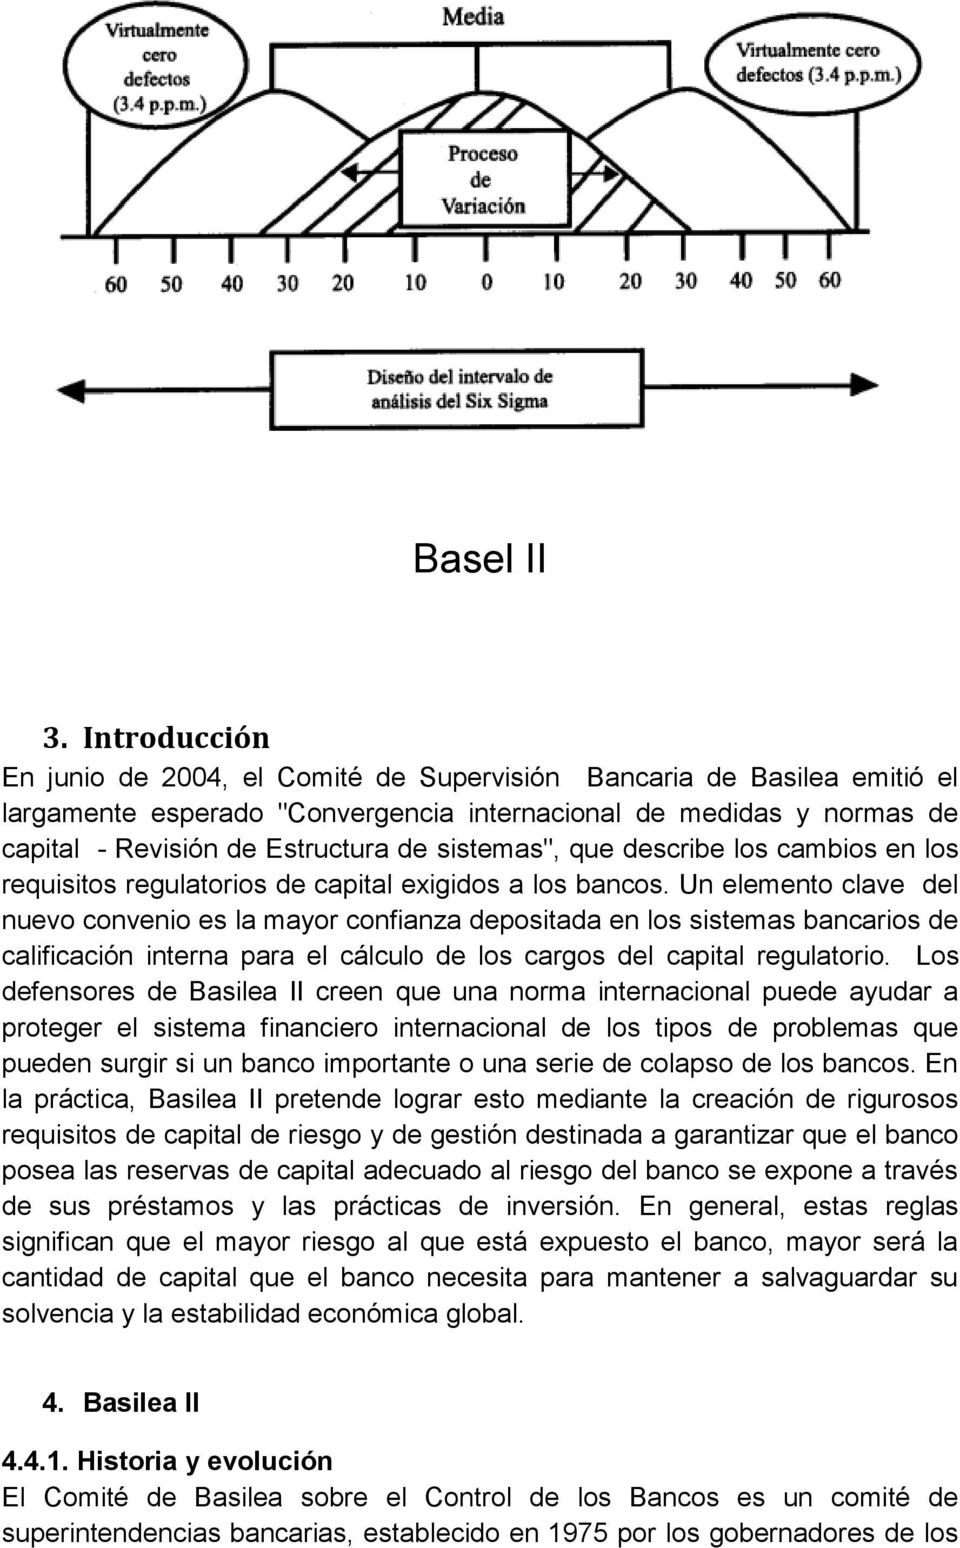 "sistemas"", que describe los cambios en los requisitos regulatorios de capital exigidos a los bancos."